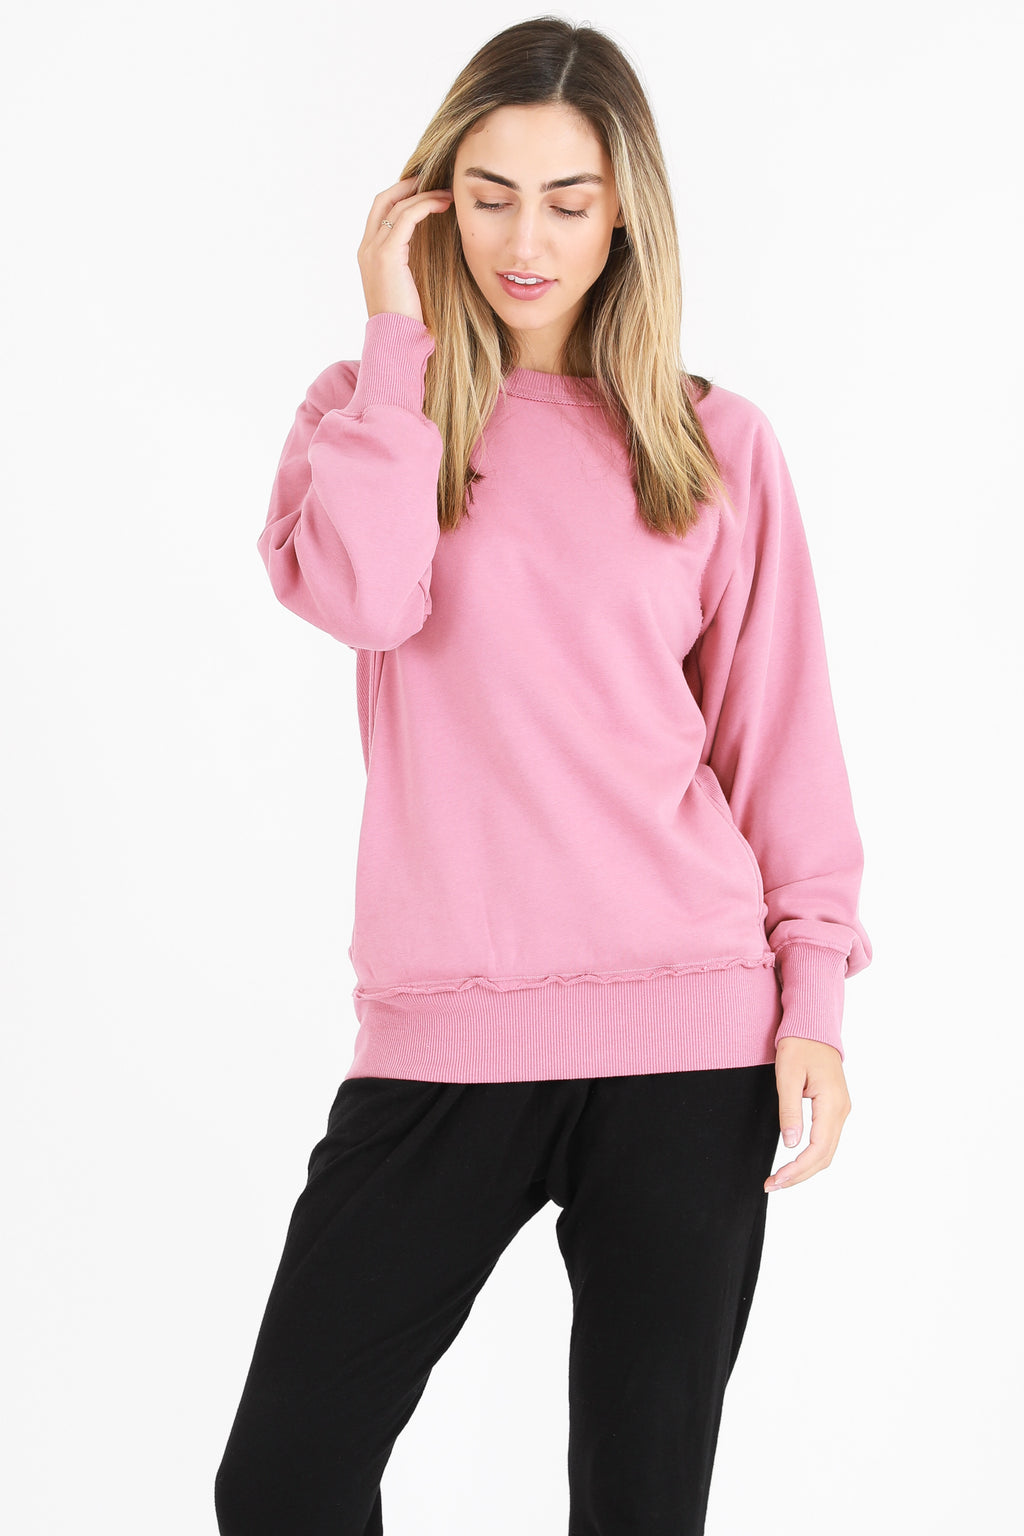 3rd Story Hannah Sweater Tango pink